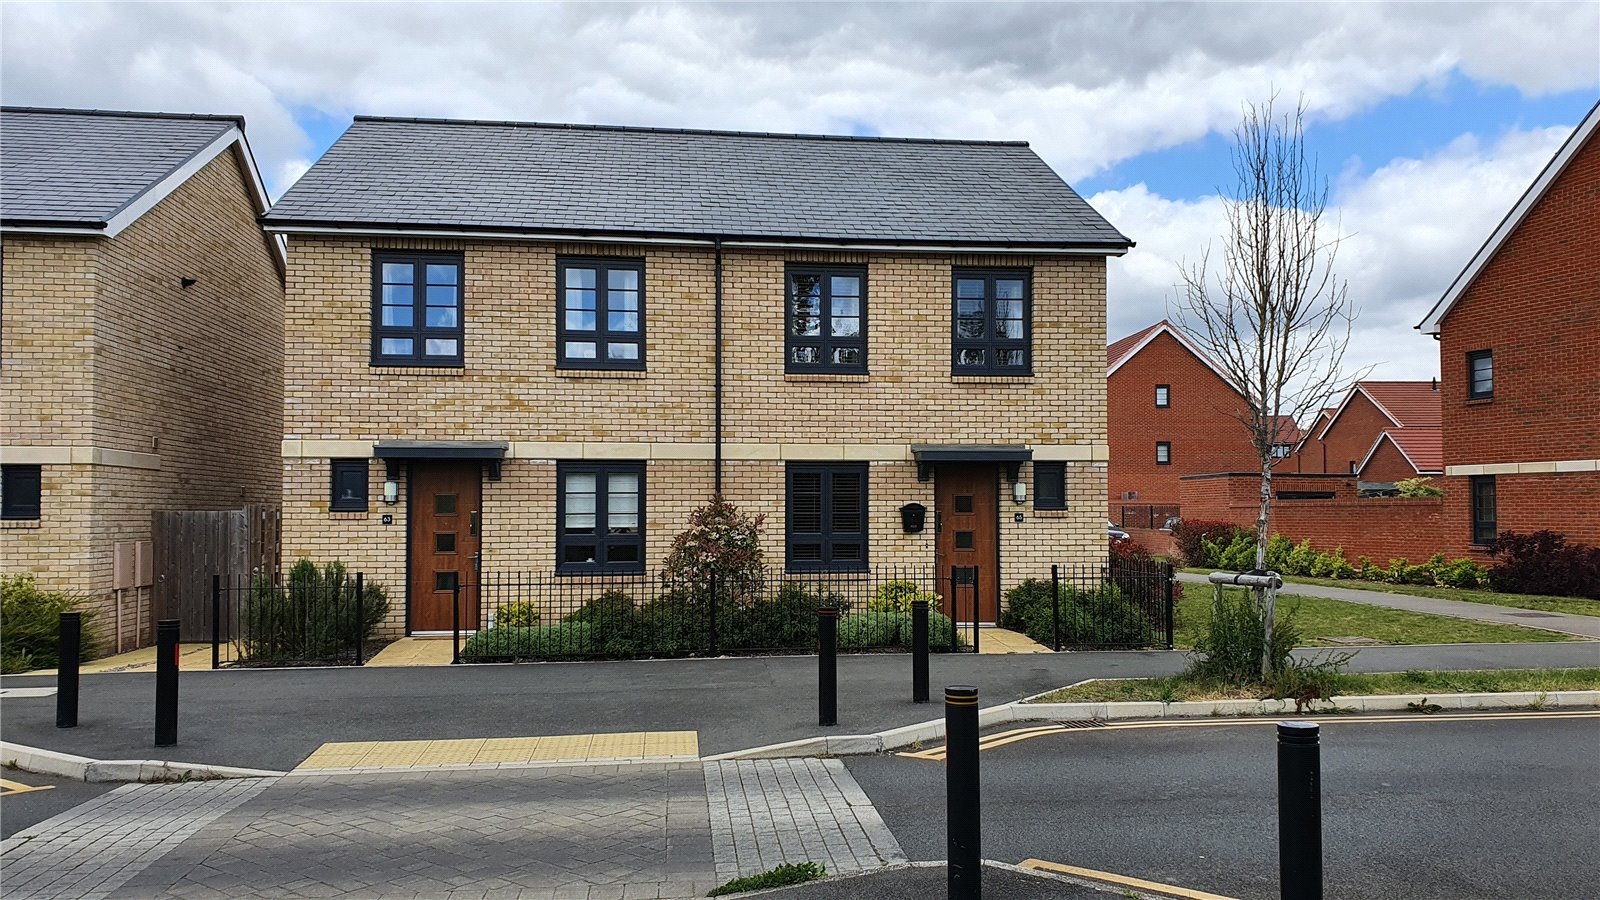 2 bed house for sale in Great High Ground, St Neots, PE19